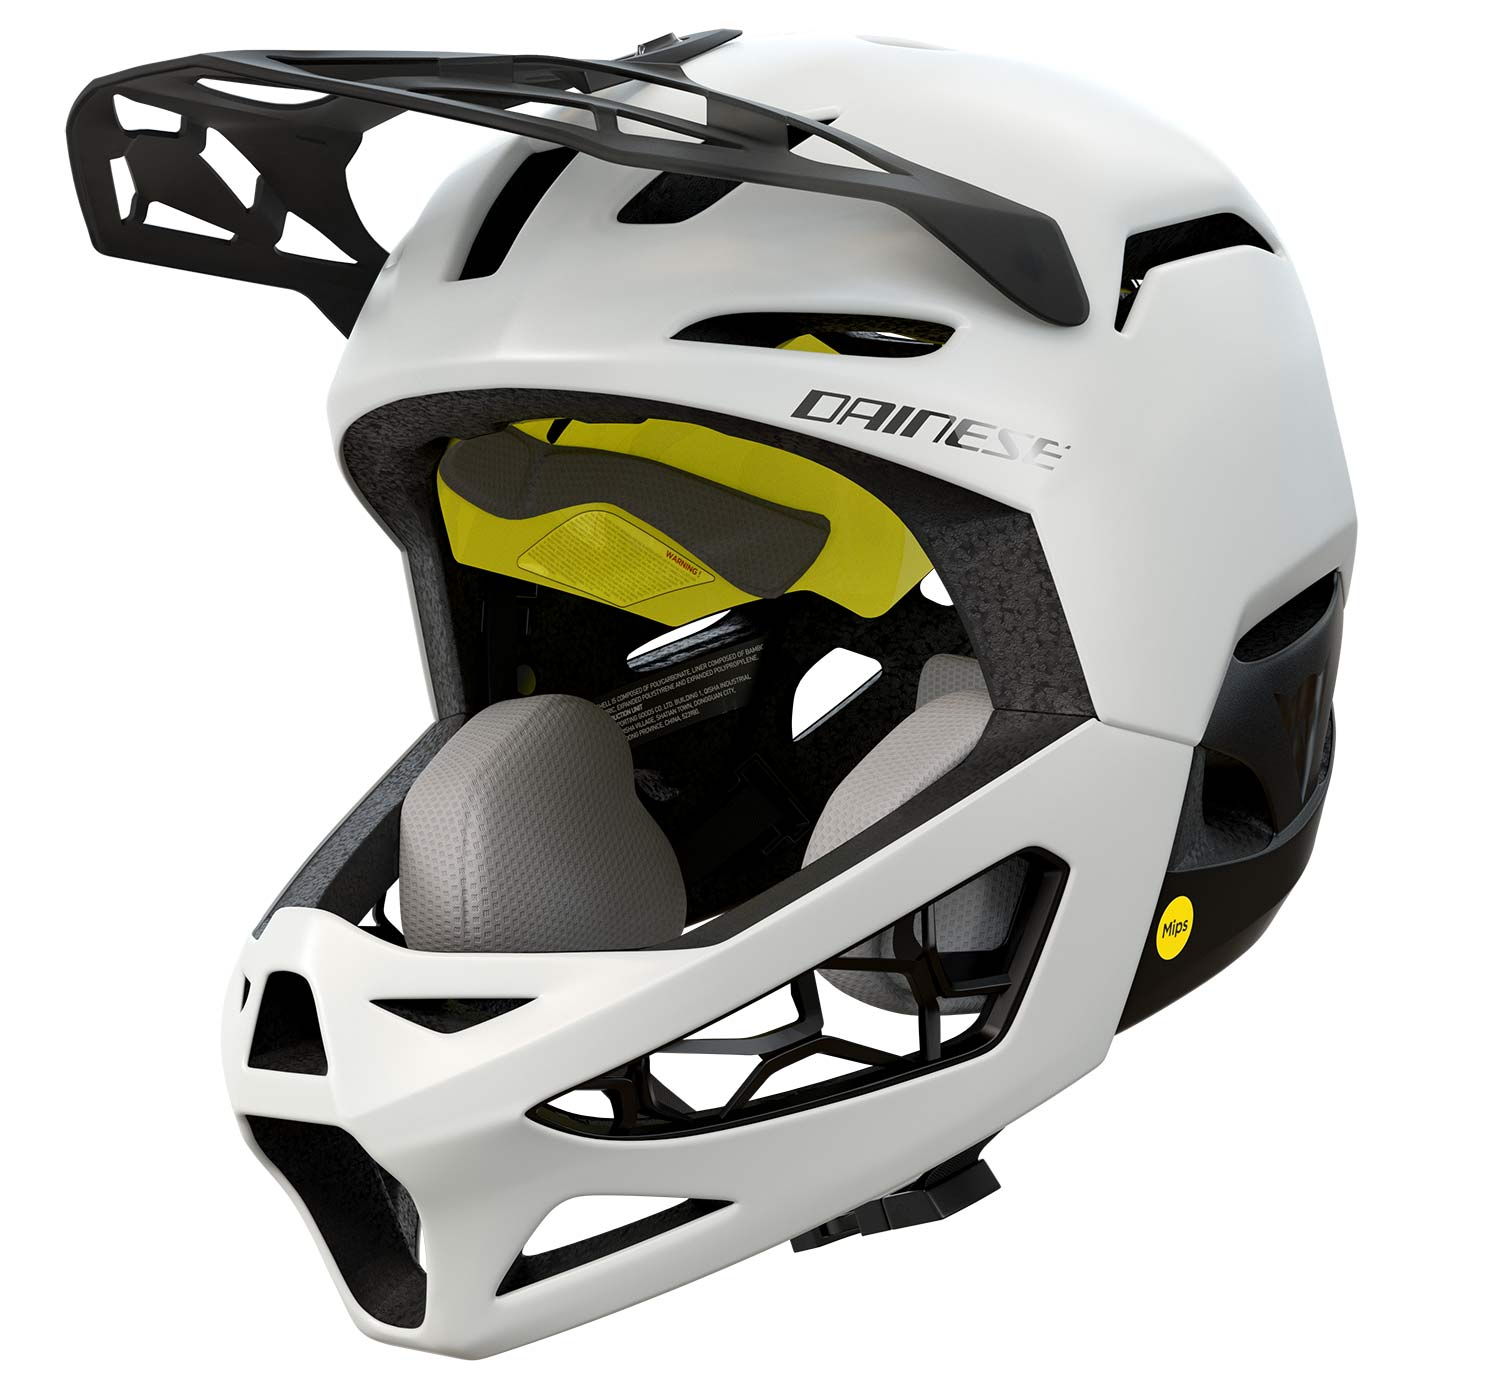 Dainese Linea 01 world's lightest full face helmet, lightweight MIPS DH MTB protection at 570g, angled